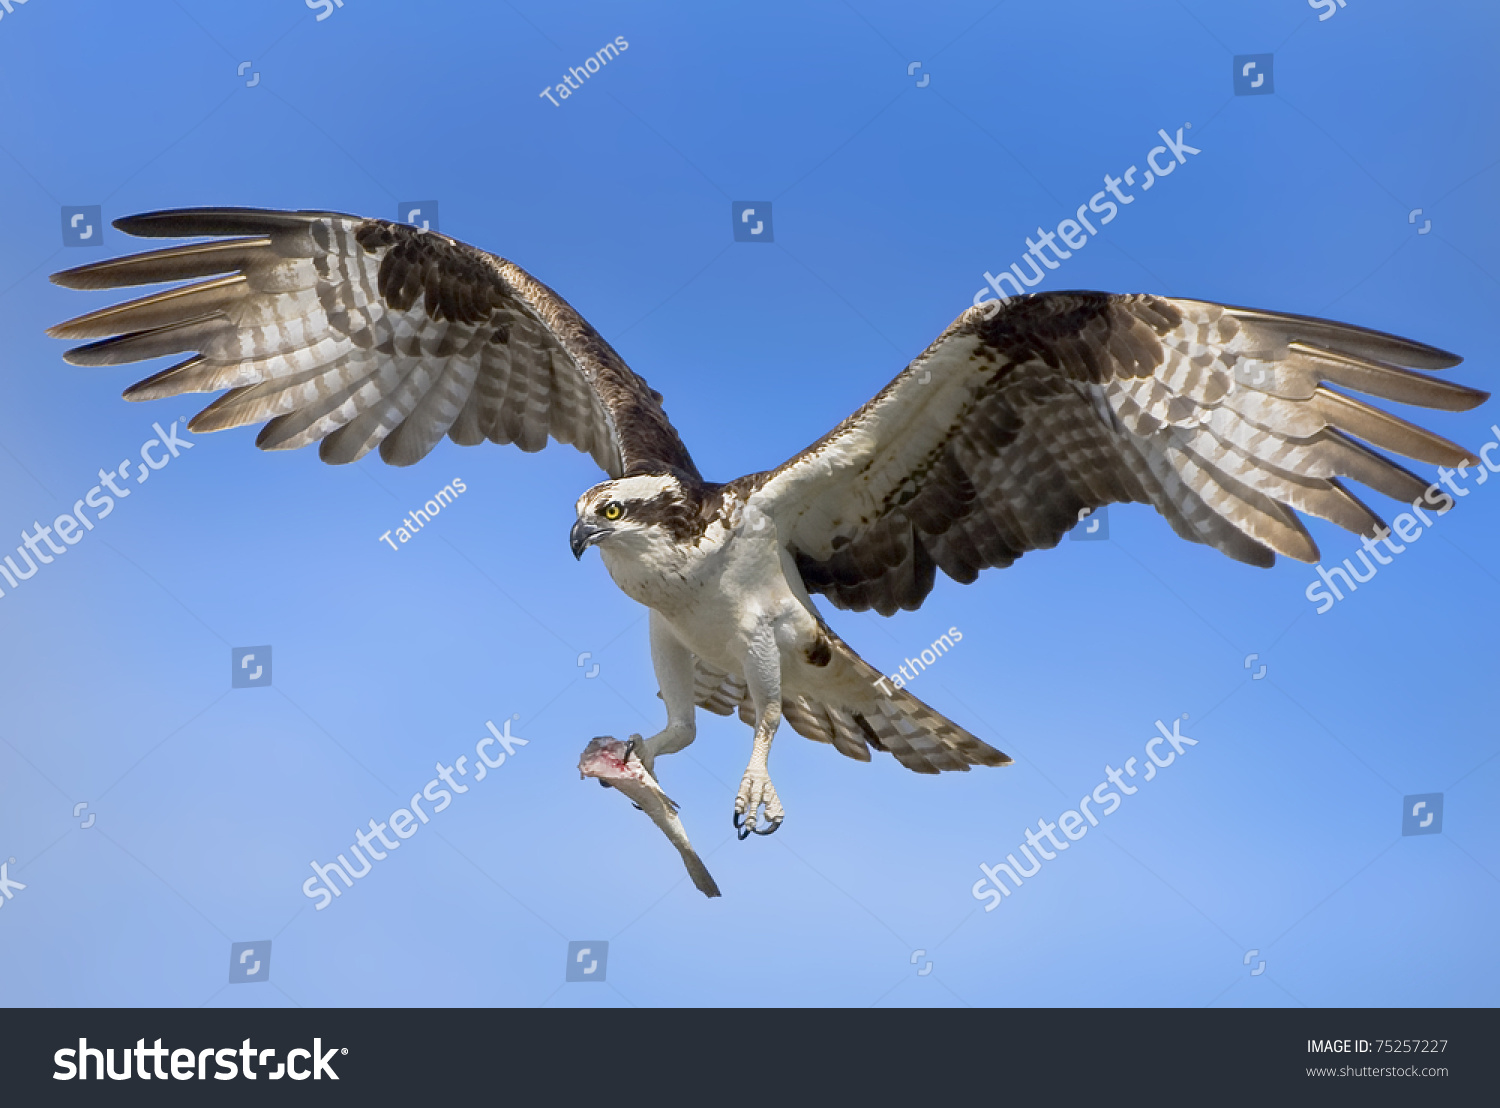 stock-photo-osprey-with-prey-in-flight-l